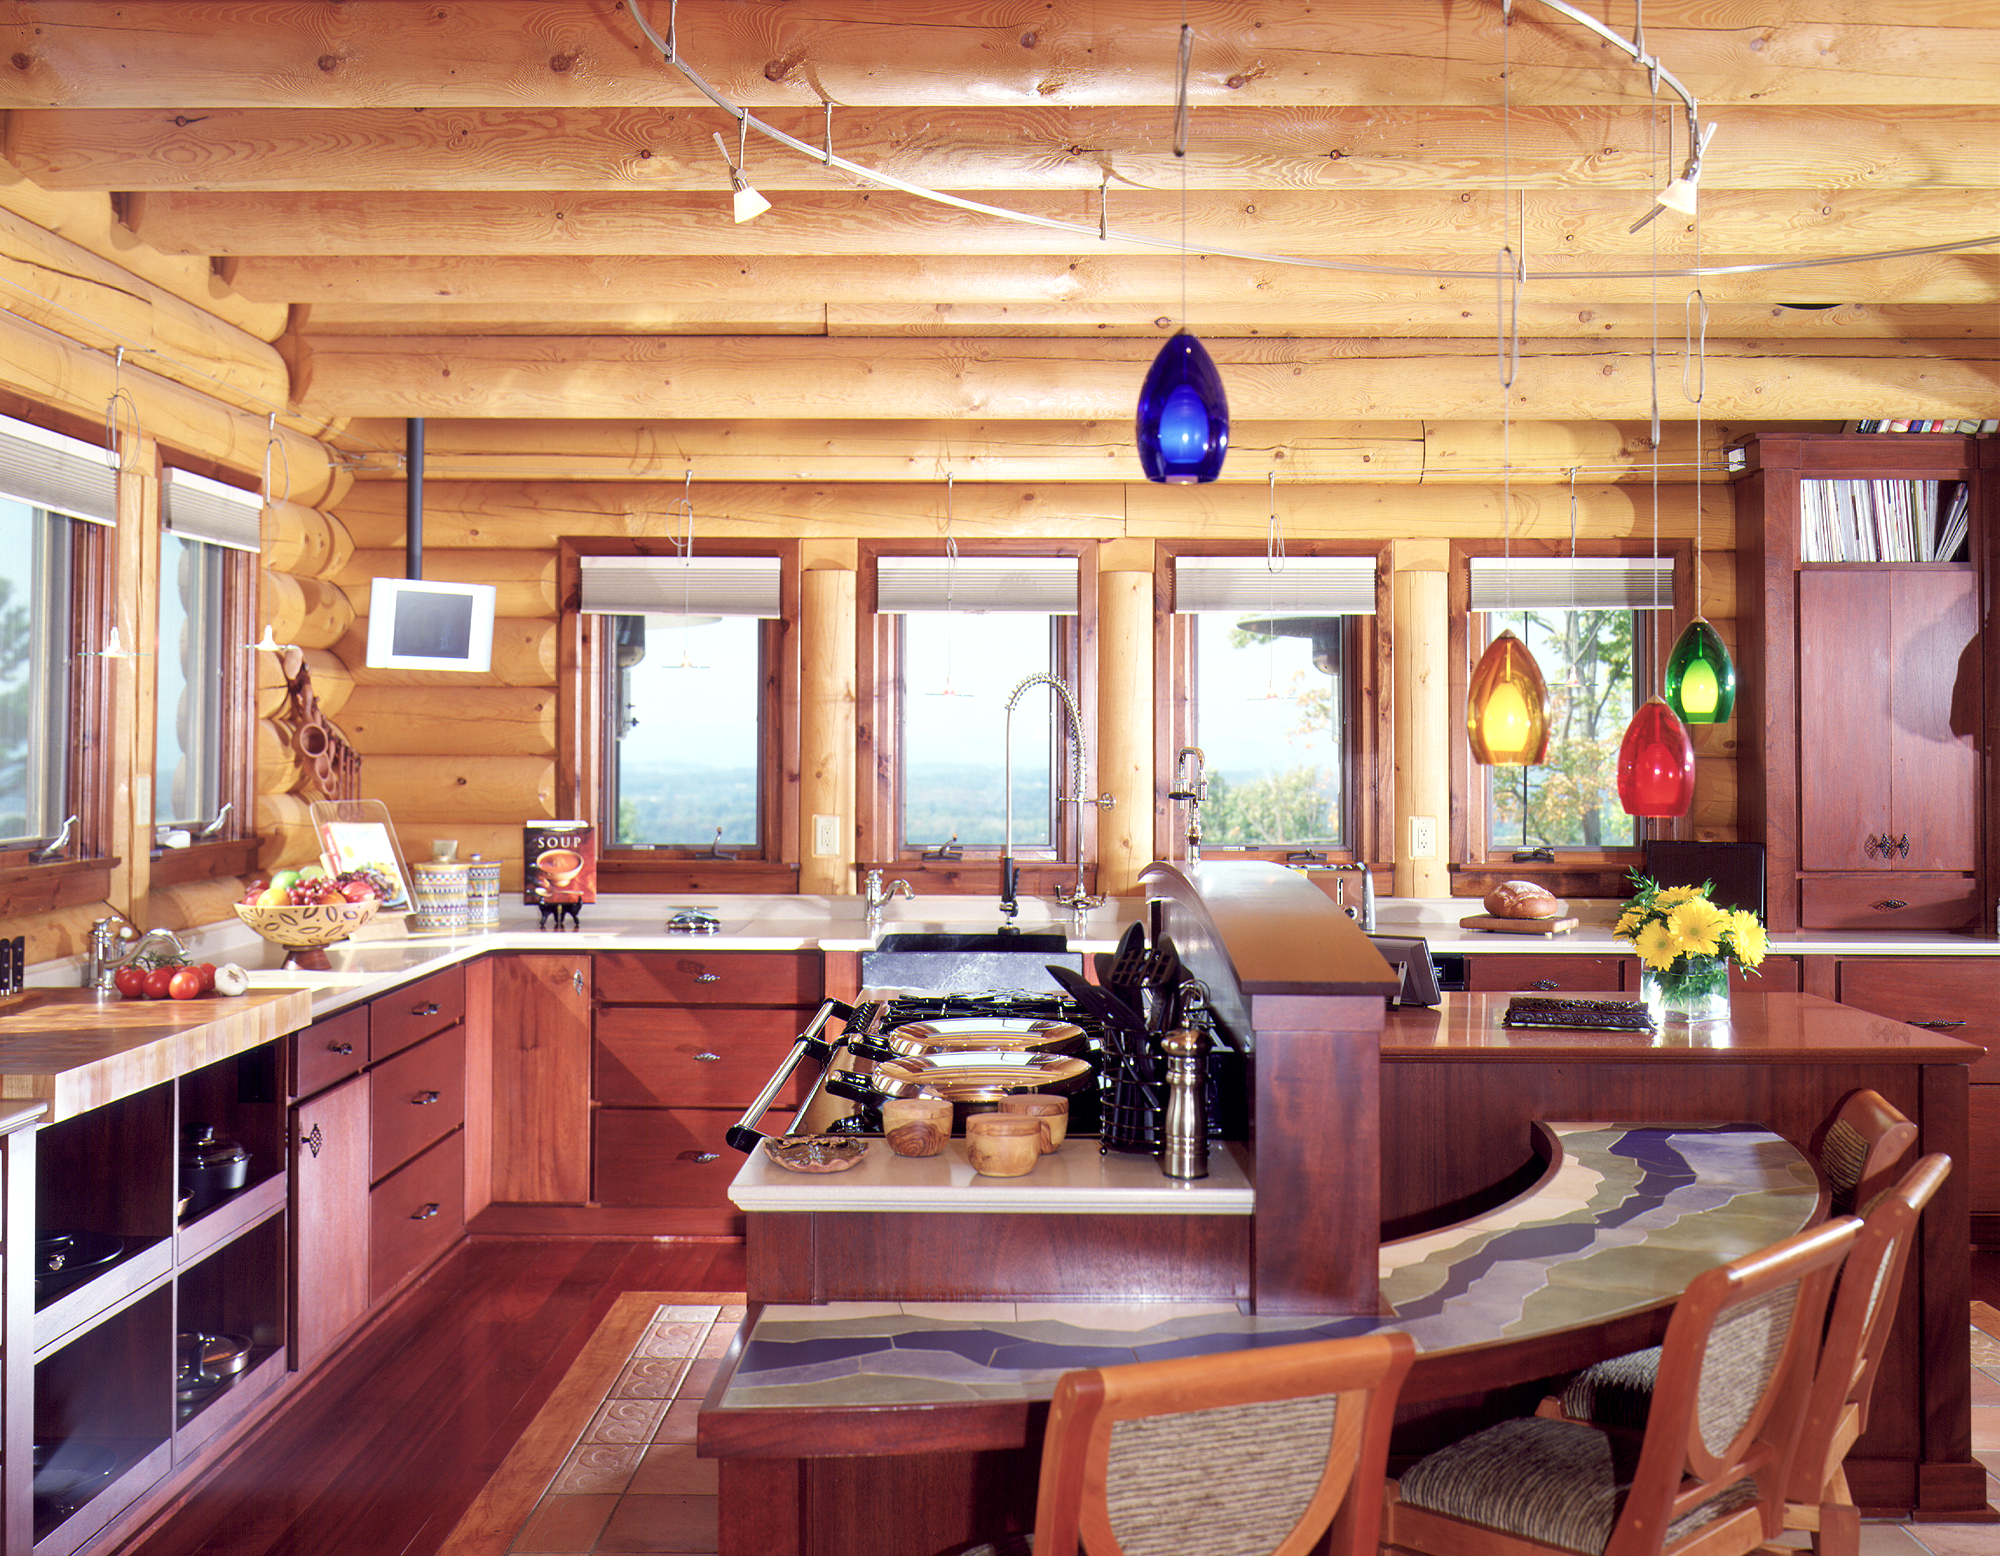 log cabin bar ideas kitchen design ideas real log on home interior design kitchen id=94257